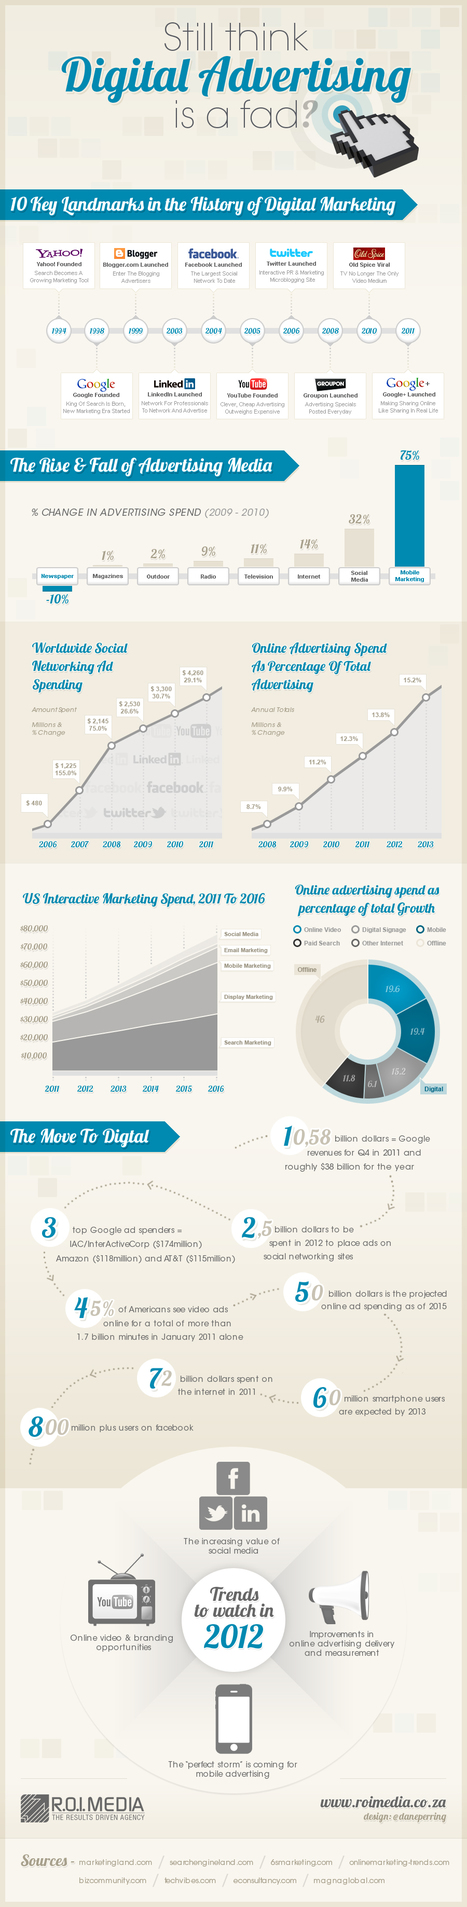 Still Think Digital Advertising Is A Fad?  #Infographic | SM | Scoop.it